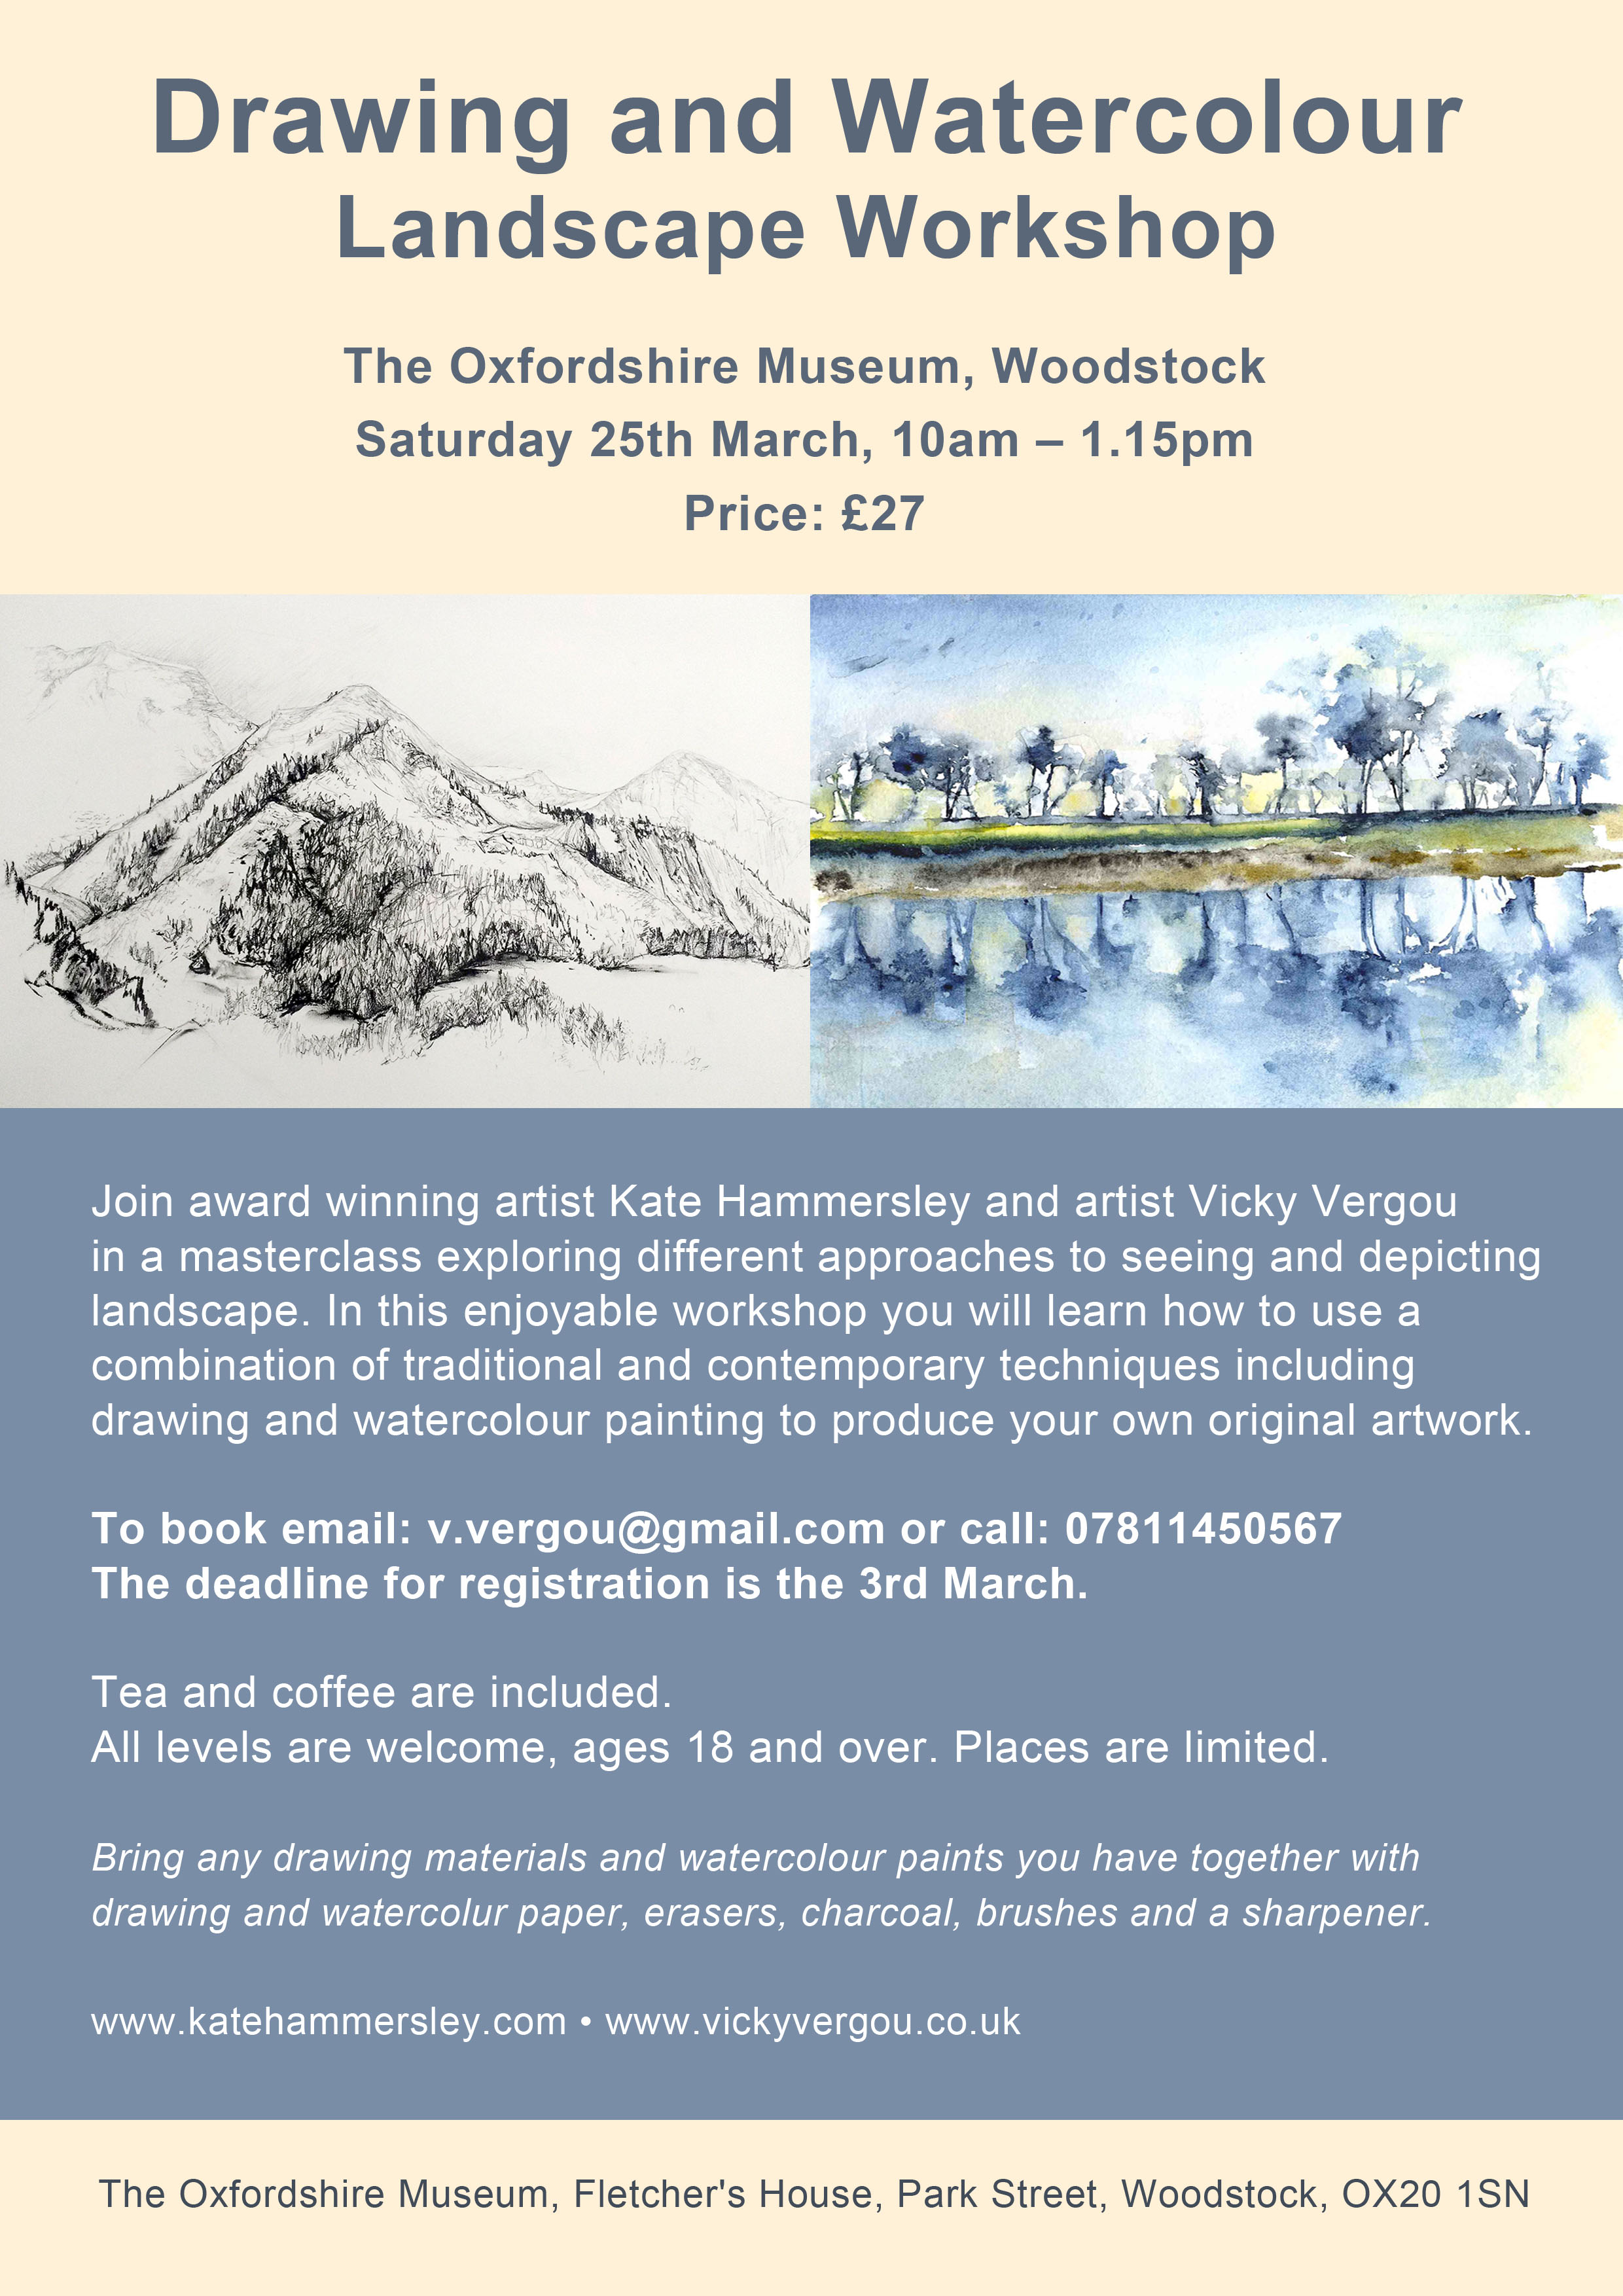 Drawing and Watercolour Landscape Workshop